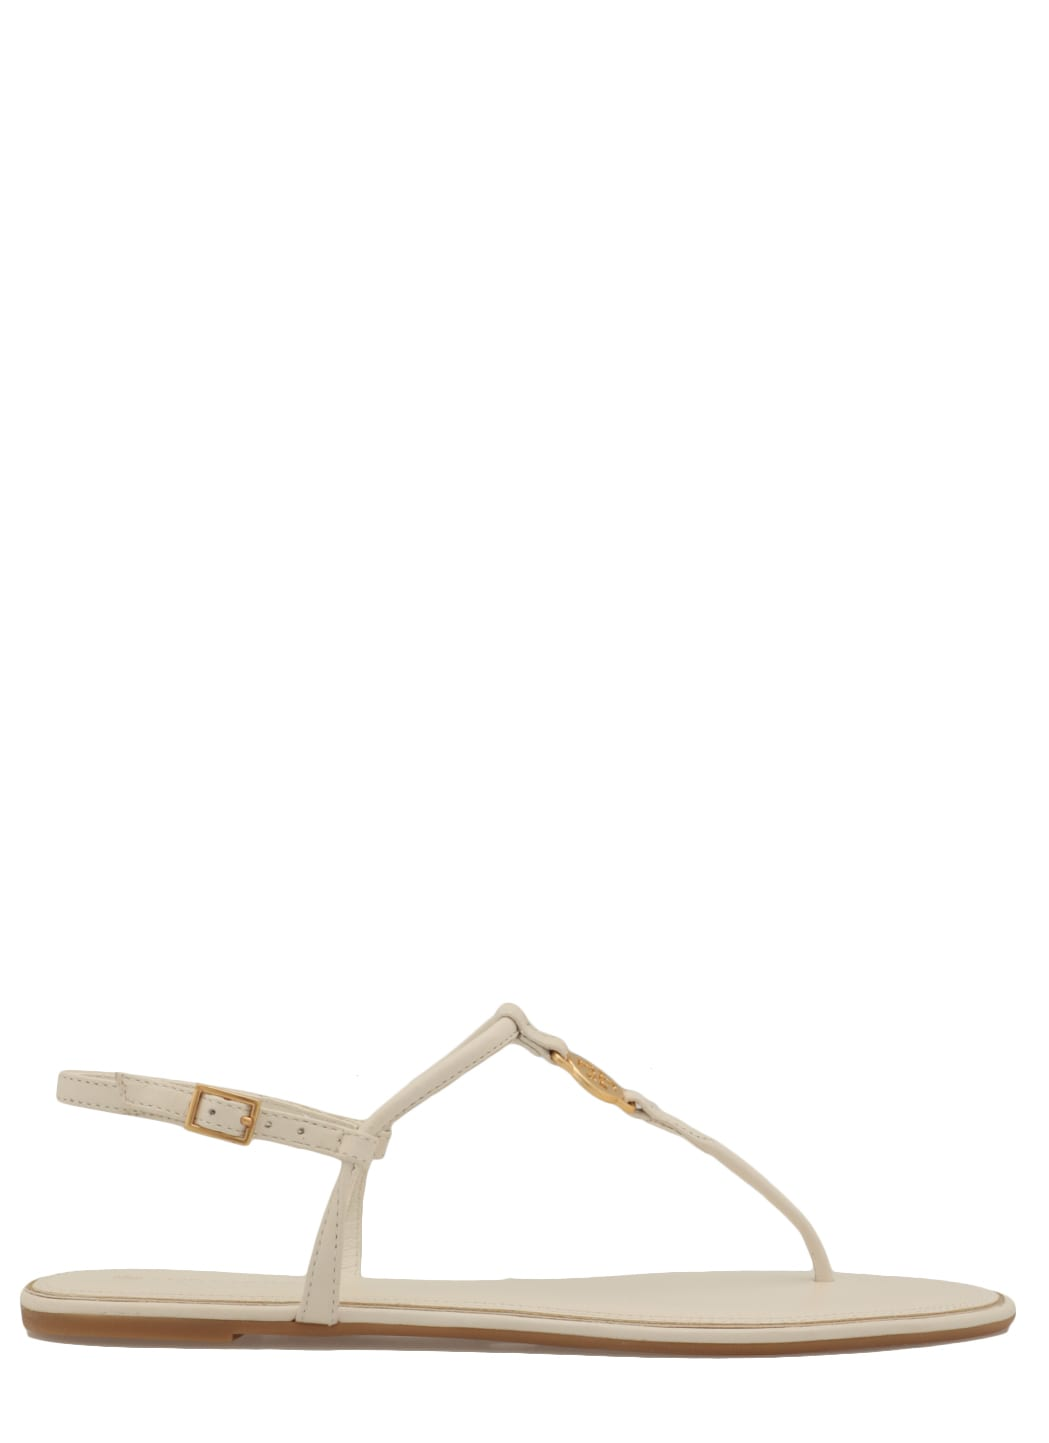 Buy Tory Burch Emmy Sandal online, shop Tory Burch shoes with free shipping